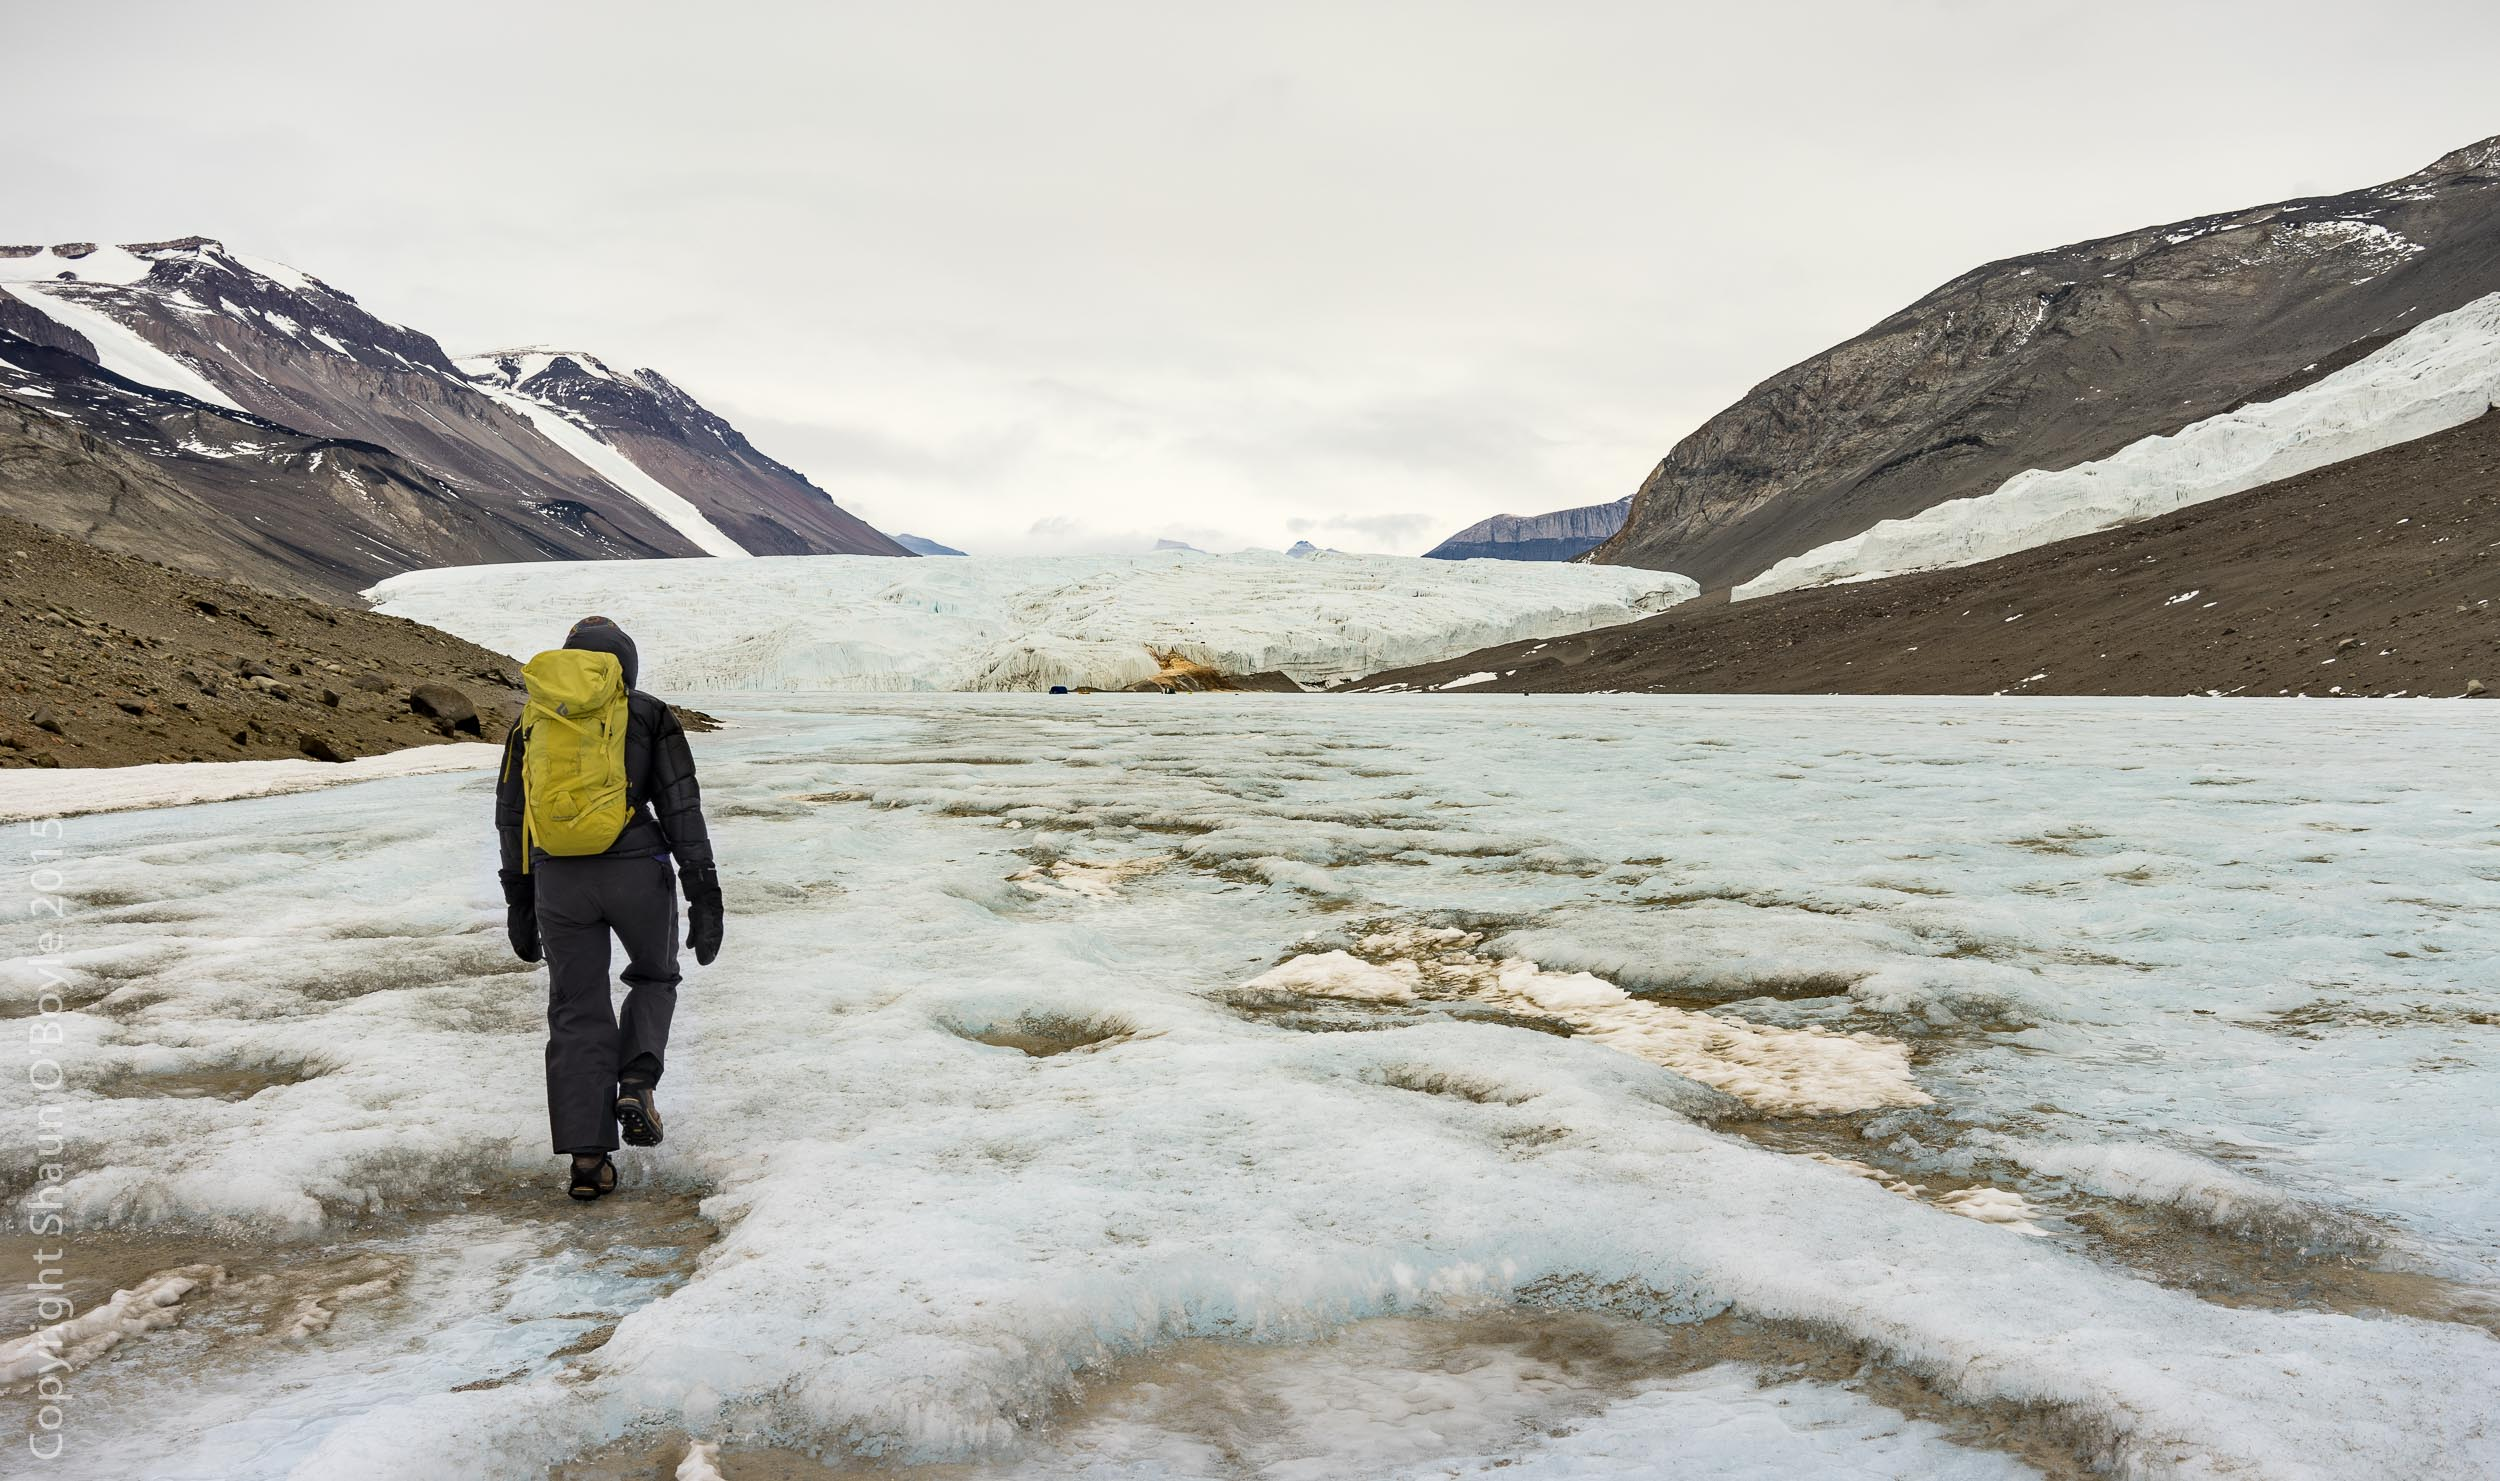 Trekking on Lake Bonney toward the Taylor Glacier. This is the glacier that Scott decended and discovered the first  ice free Dry Valley in 1903.